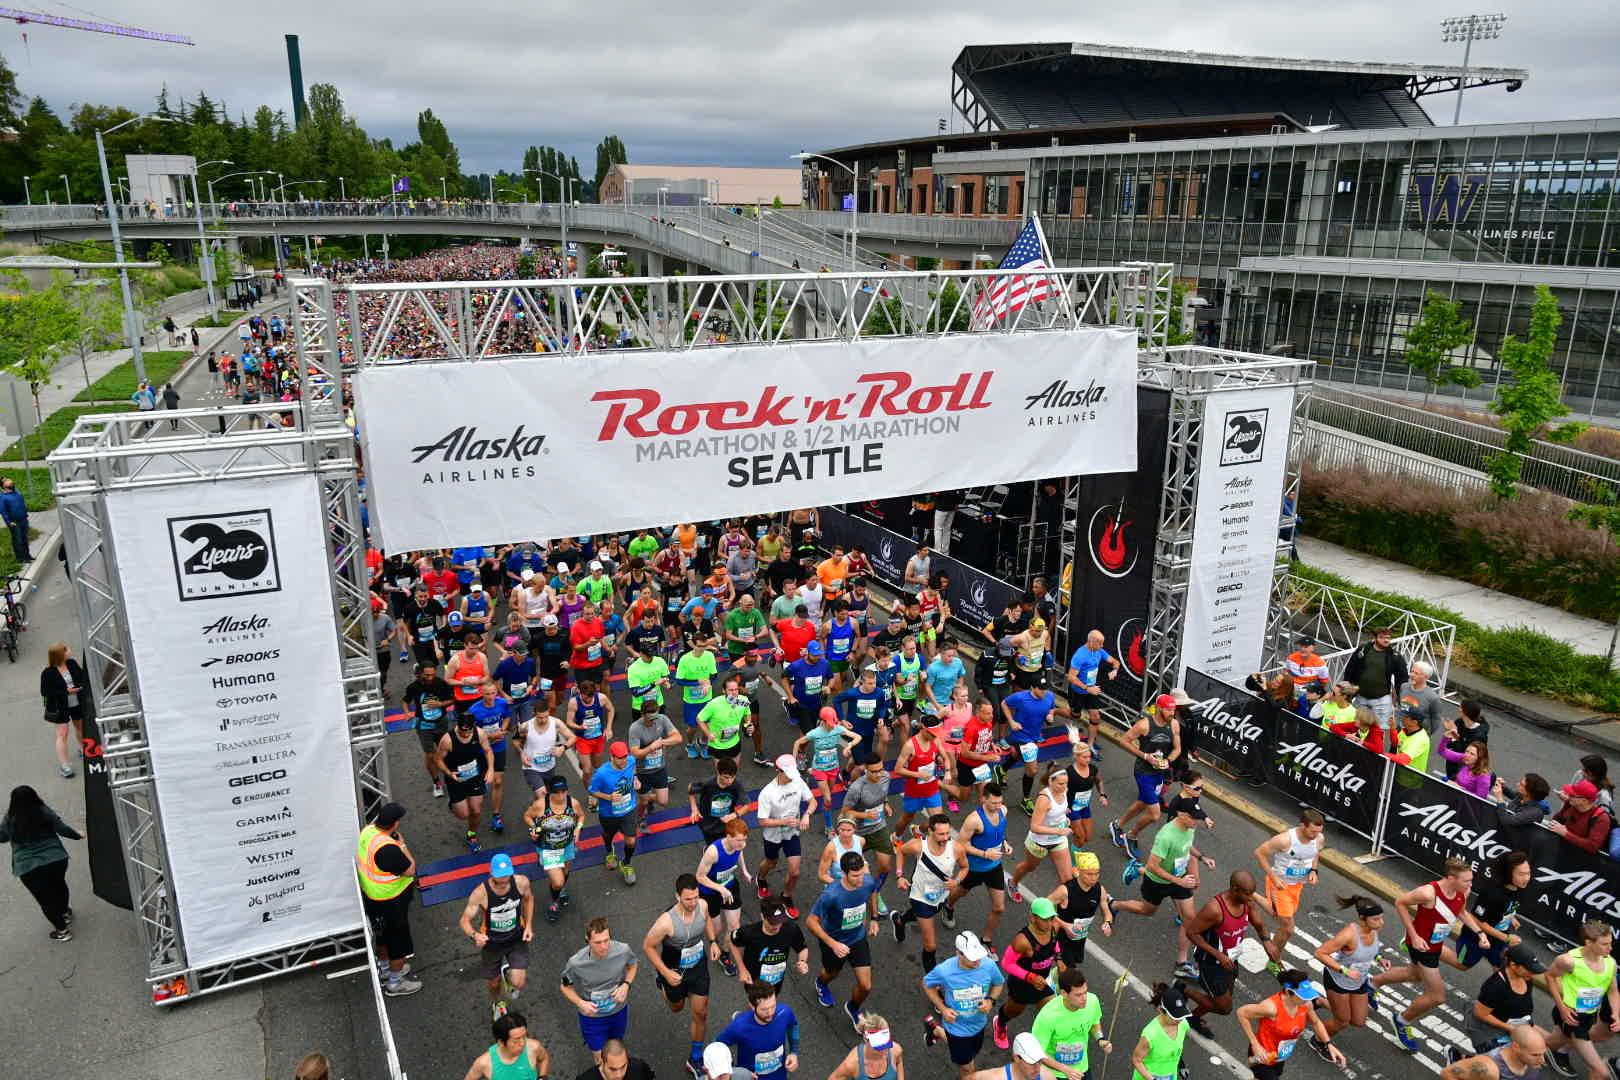 Thousands participated in the Seattle Rock 'n' Roll marathon Saturday. The race started in the University District and ended at CenturyLink Field. Photo courtesy Kevin Morris.